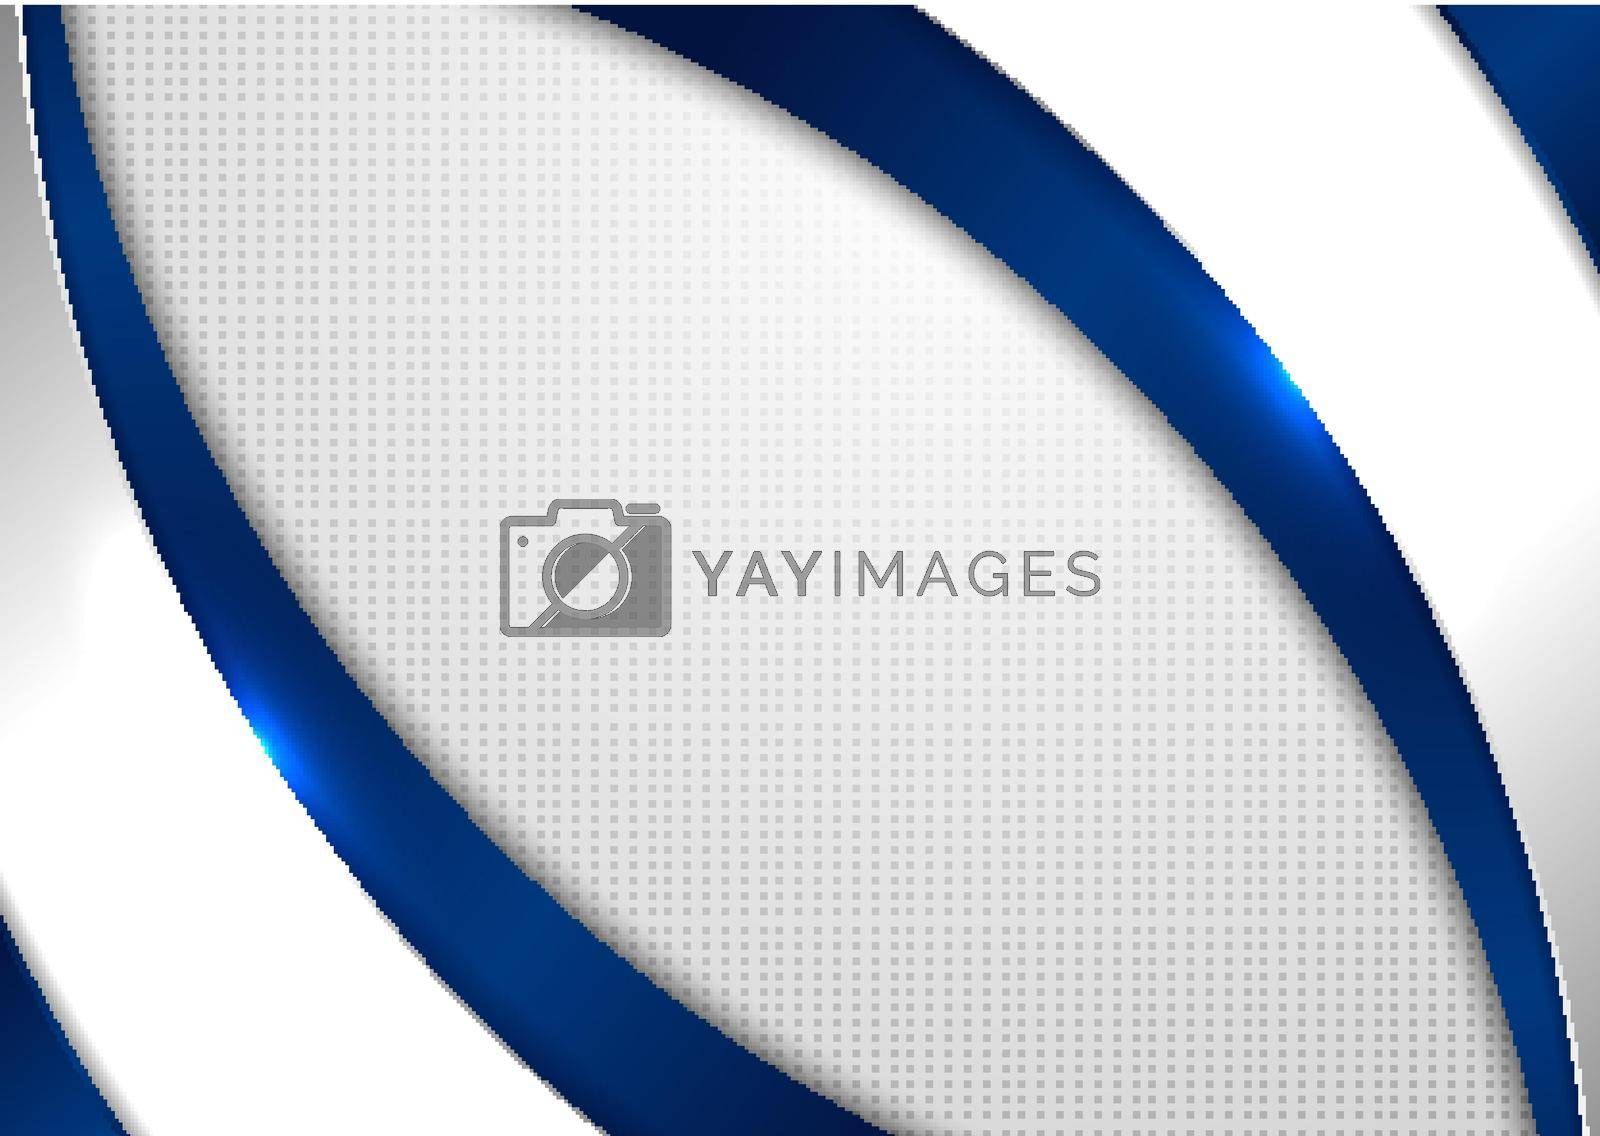 Abstract template blue and gray curve shape on white background with square pattern. Technology concept. Vector illustration